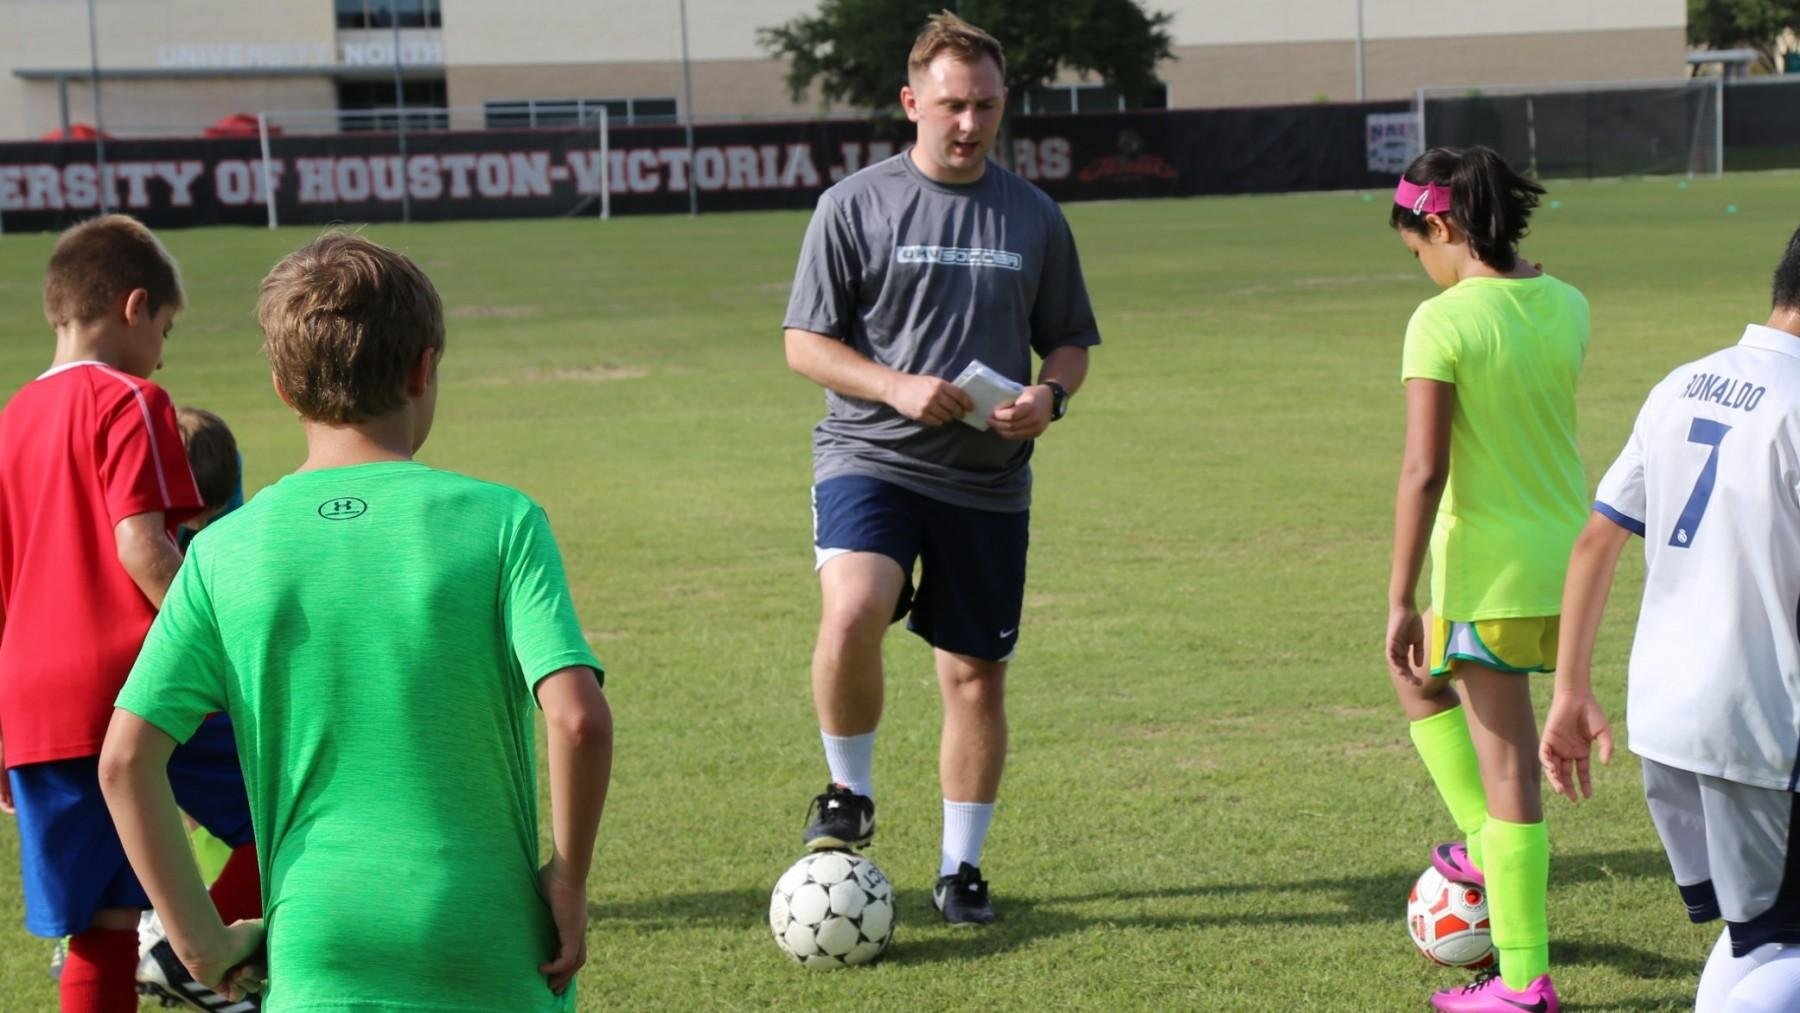 Brandon Misuraca, center, has been hired as an assistant coach for the UHV men's and women's soccer programs.